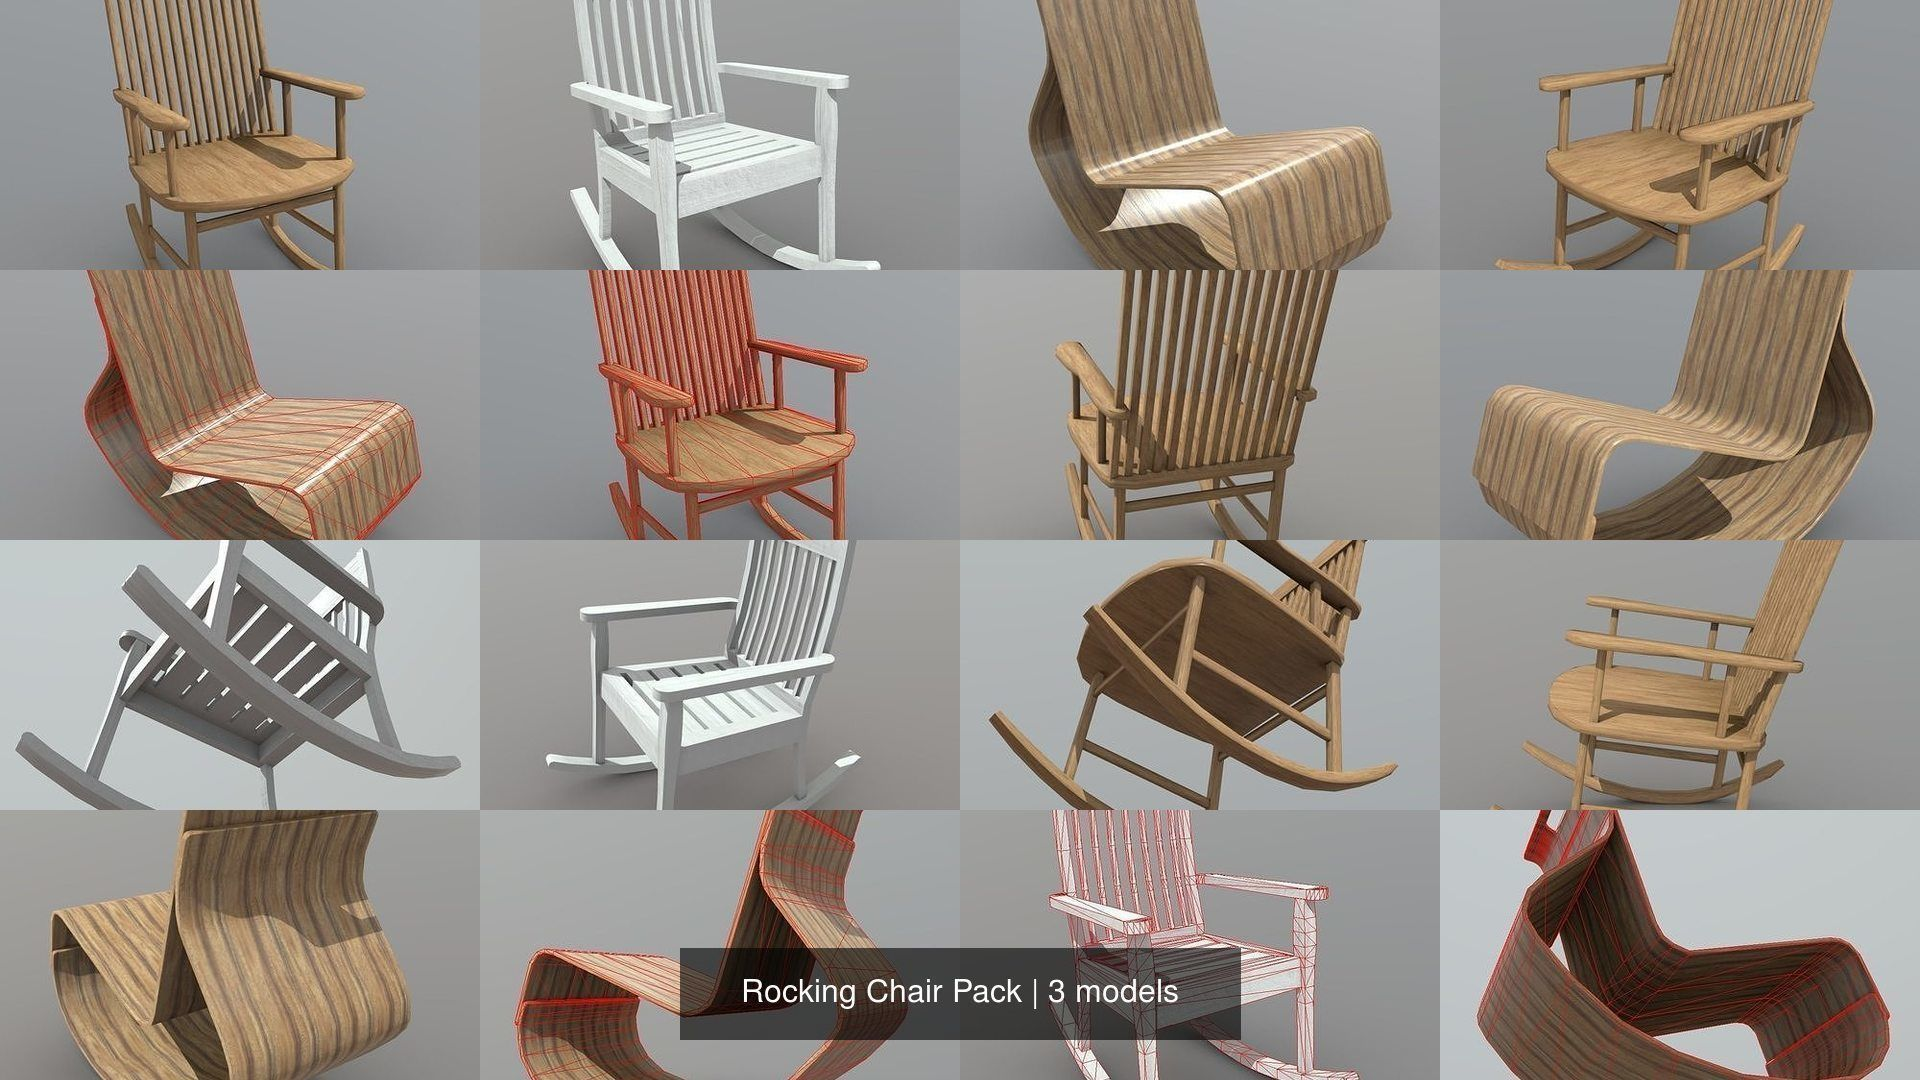 Rocking Chair Pack